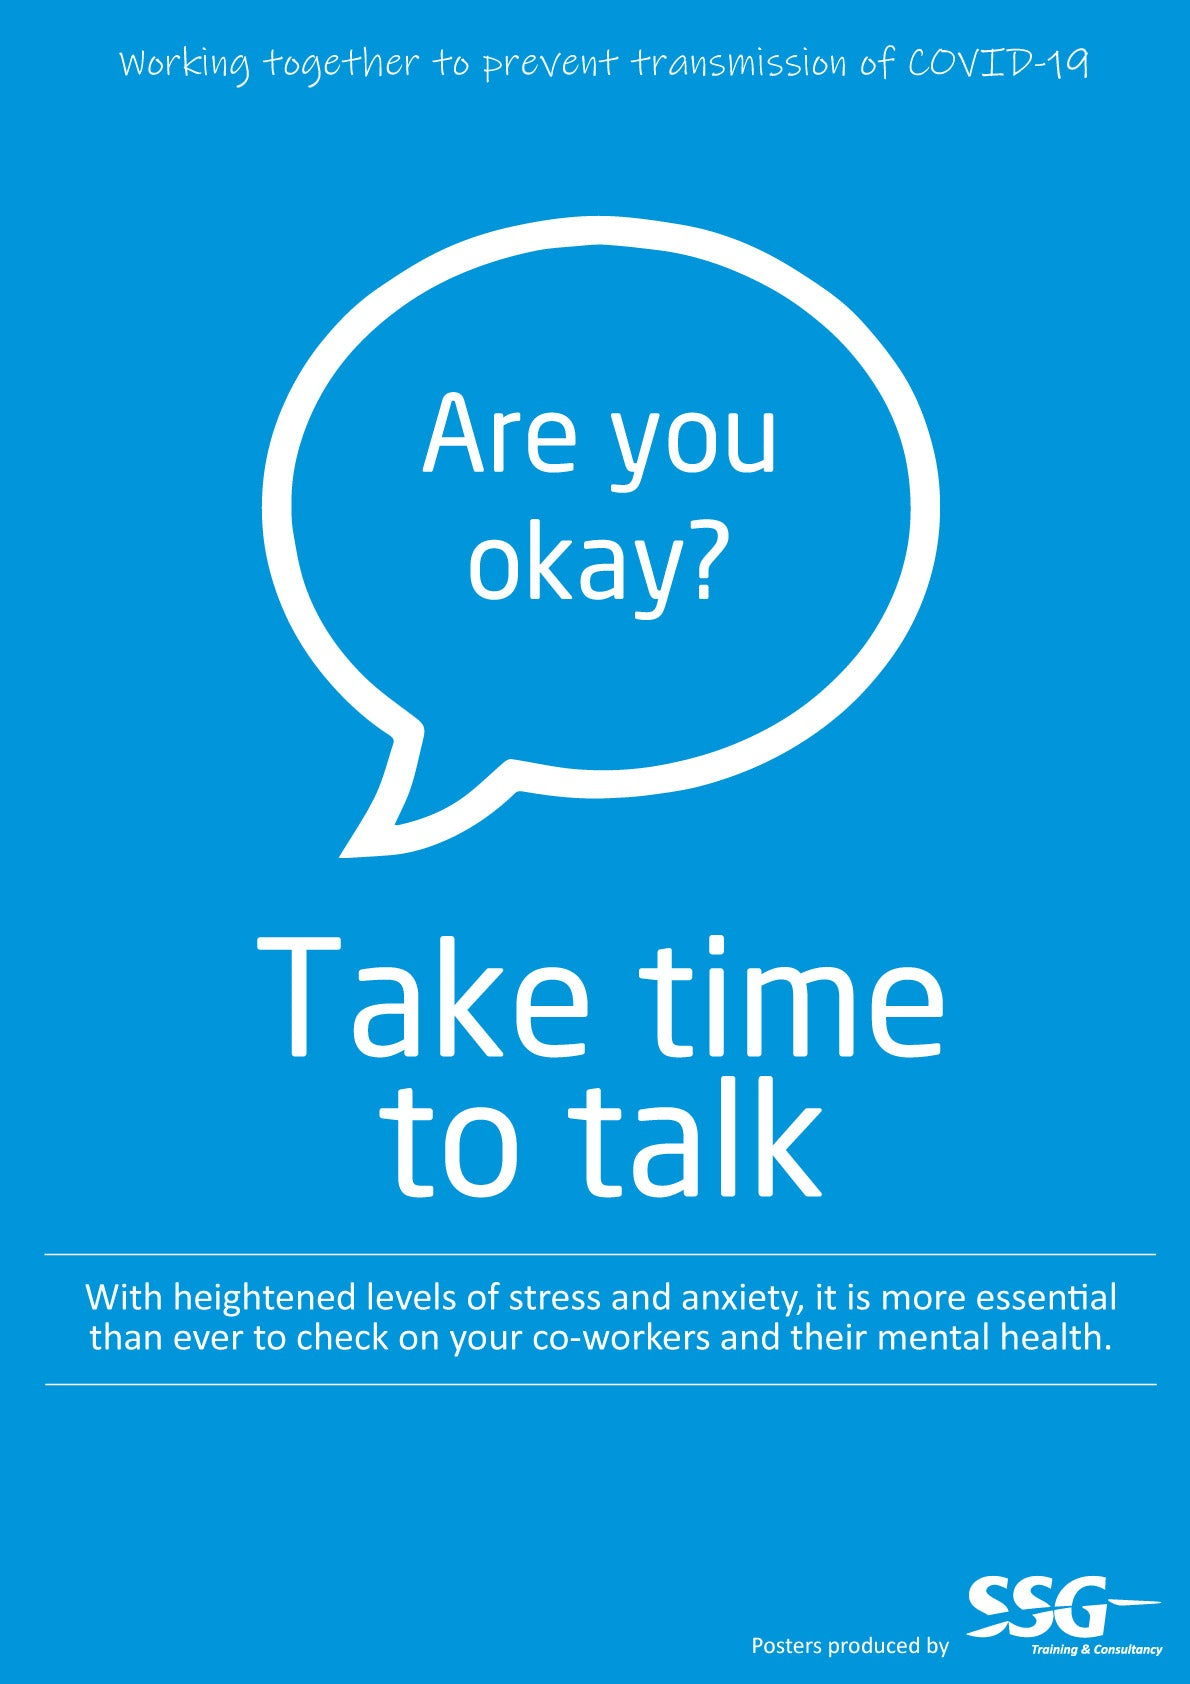 Take time to talk poster